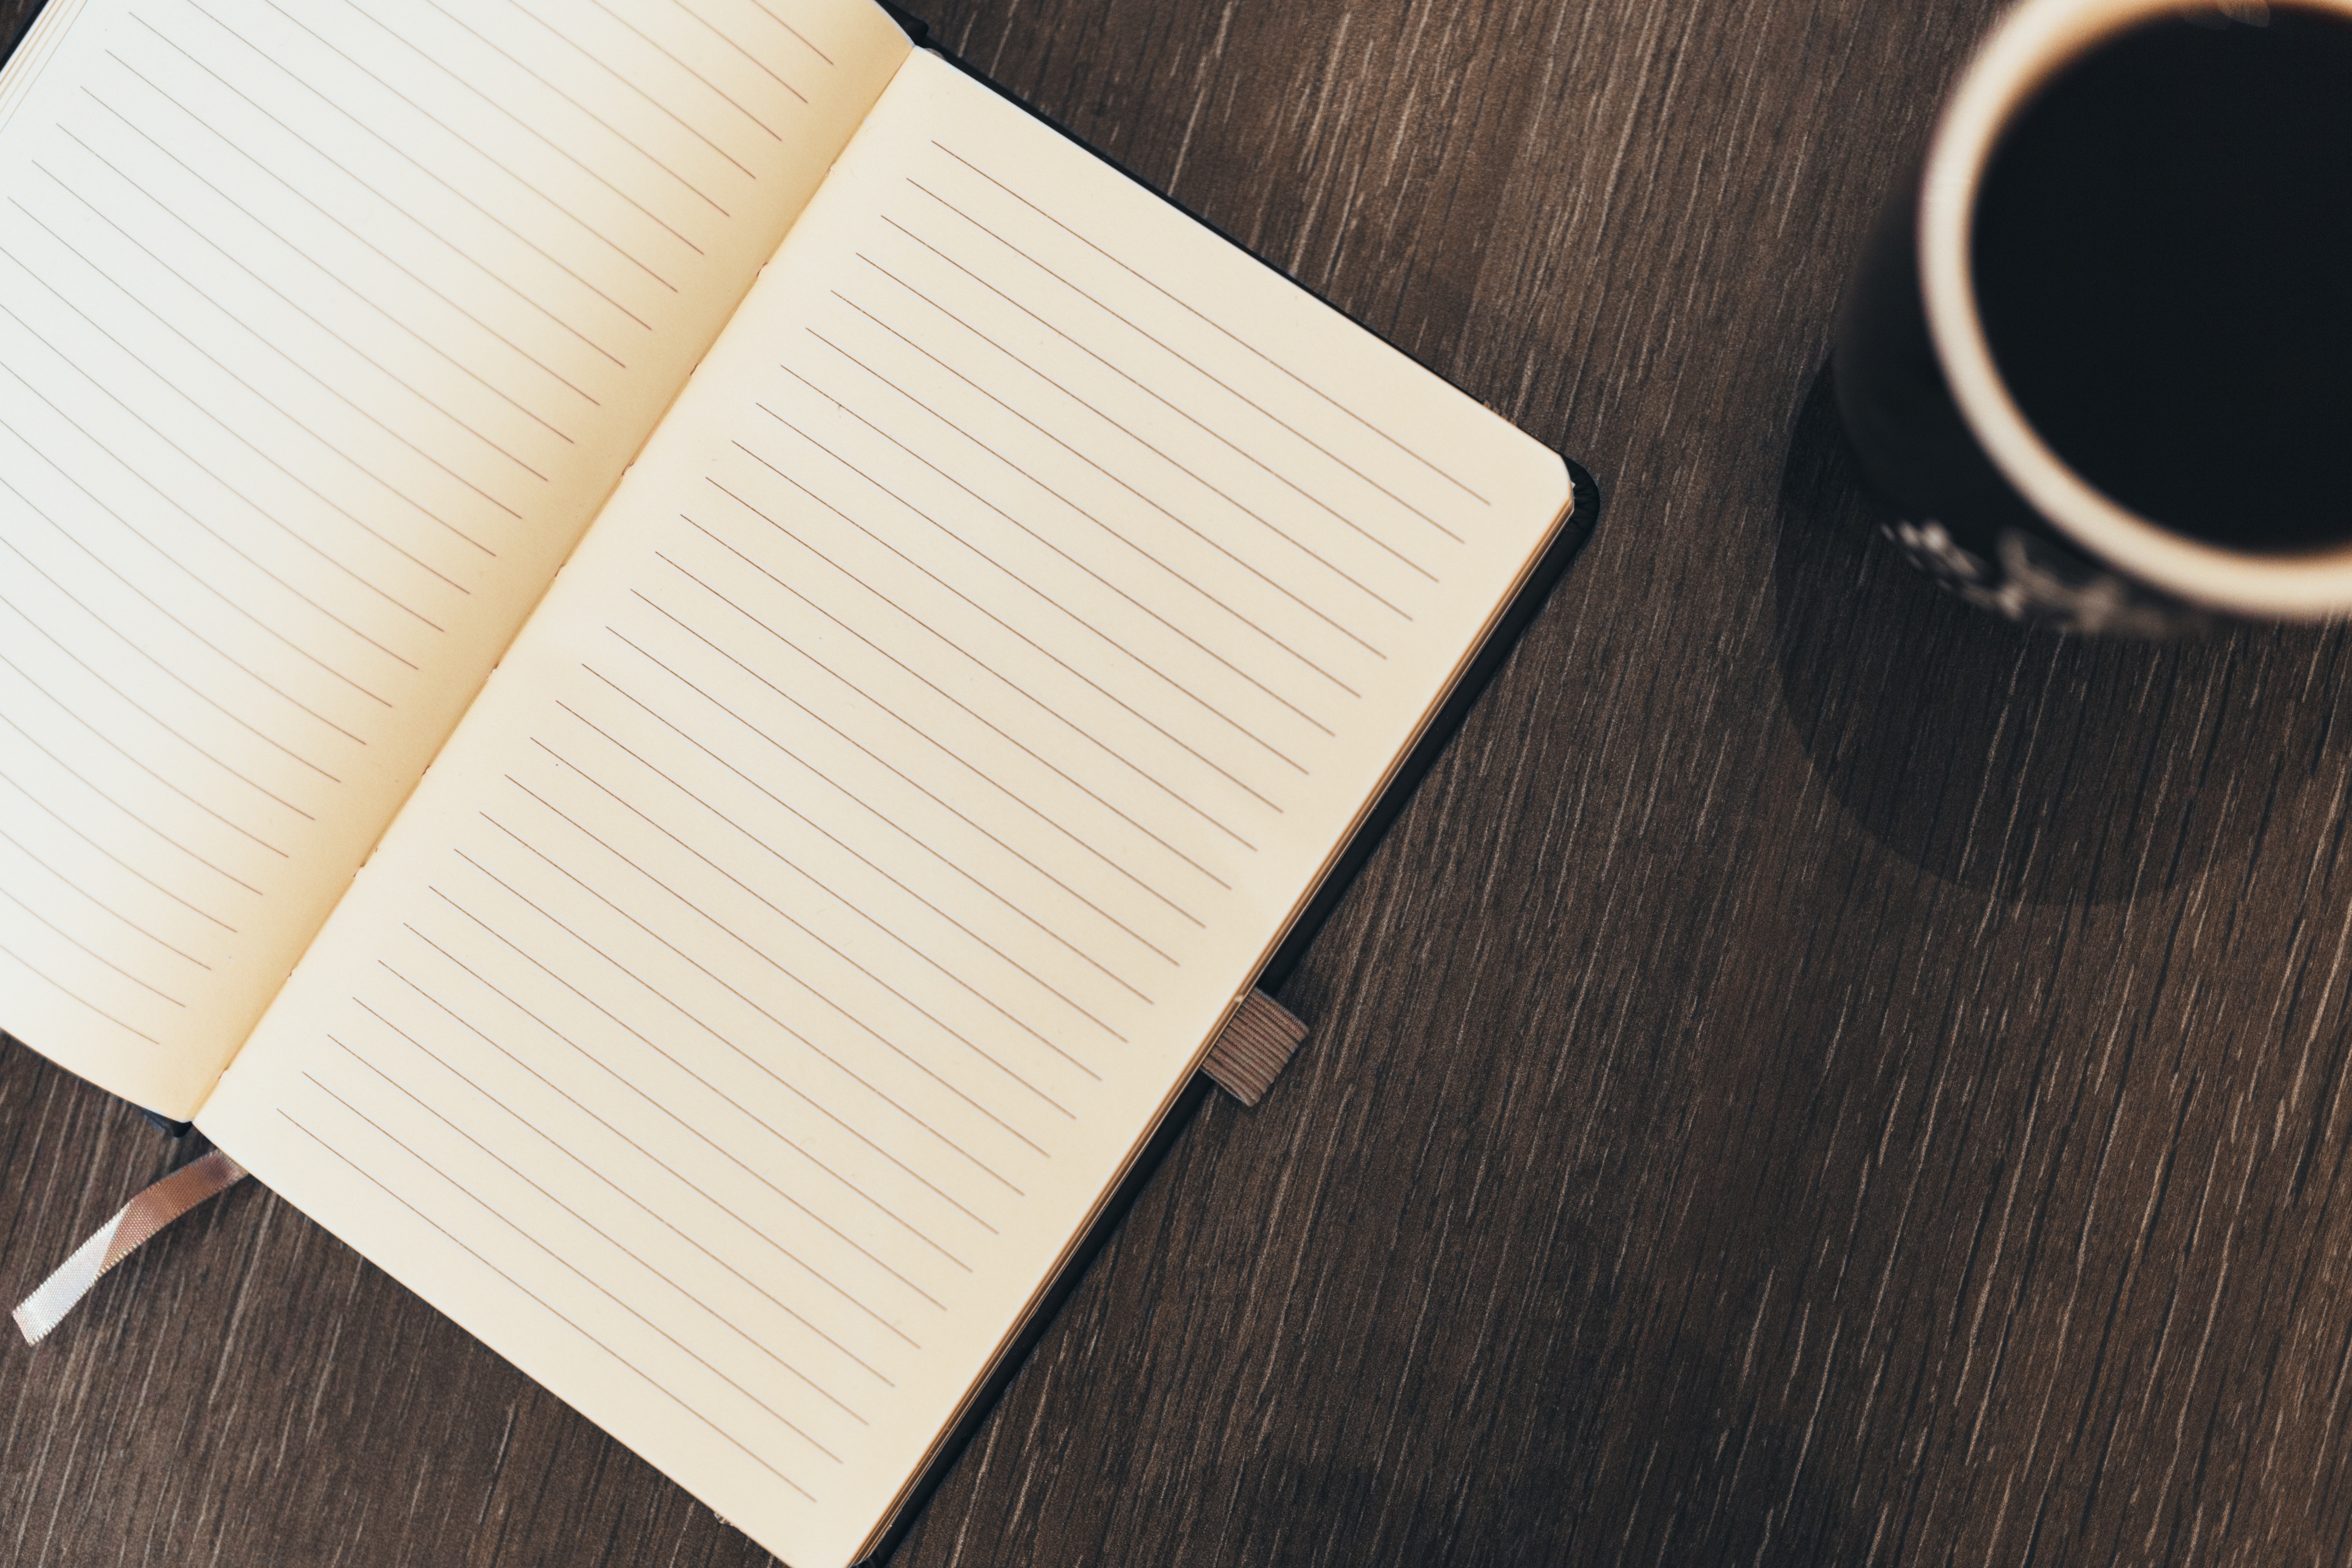 Journal open to blank page